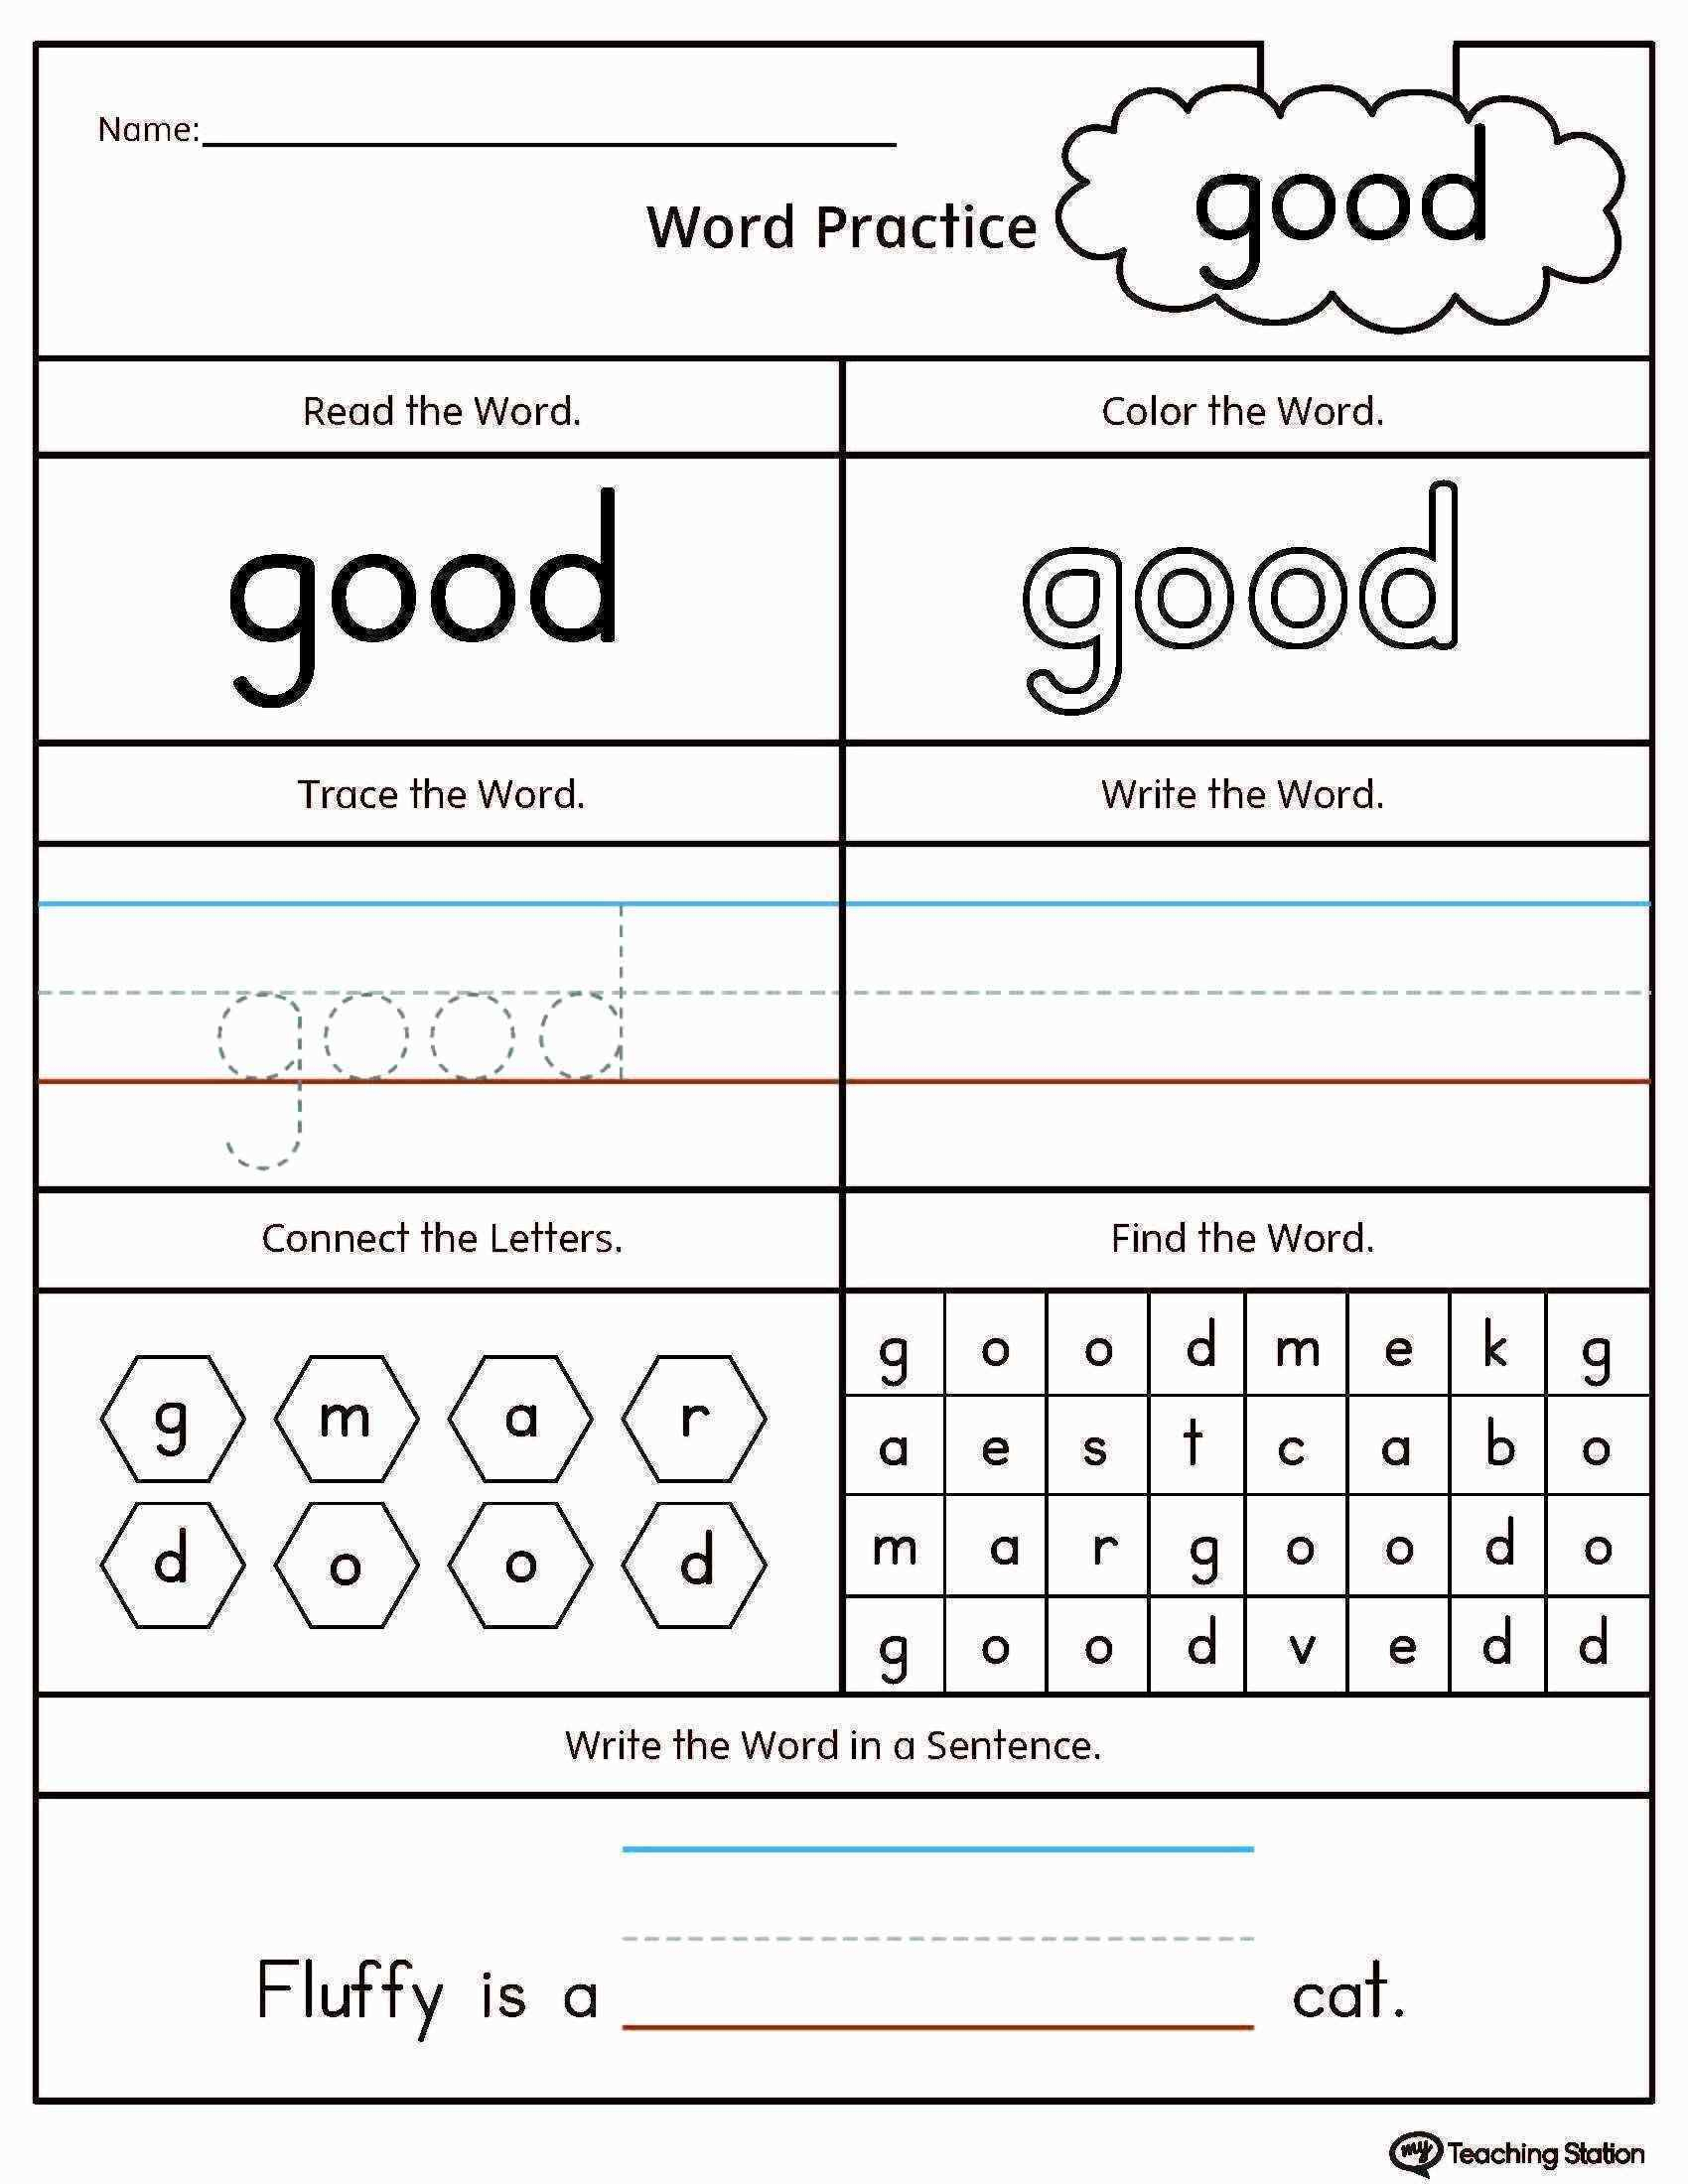 Tracing Name Template Unique Free Printable Name Tracing Templates - Free Printable Name Tracing